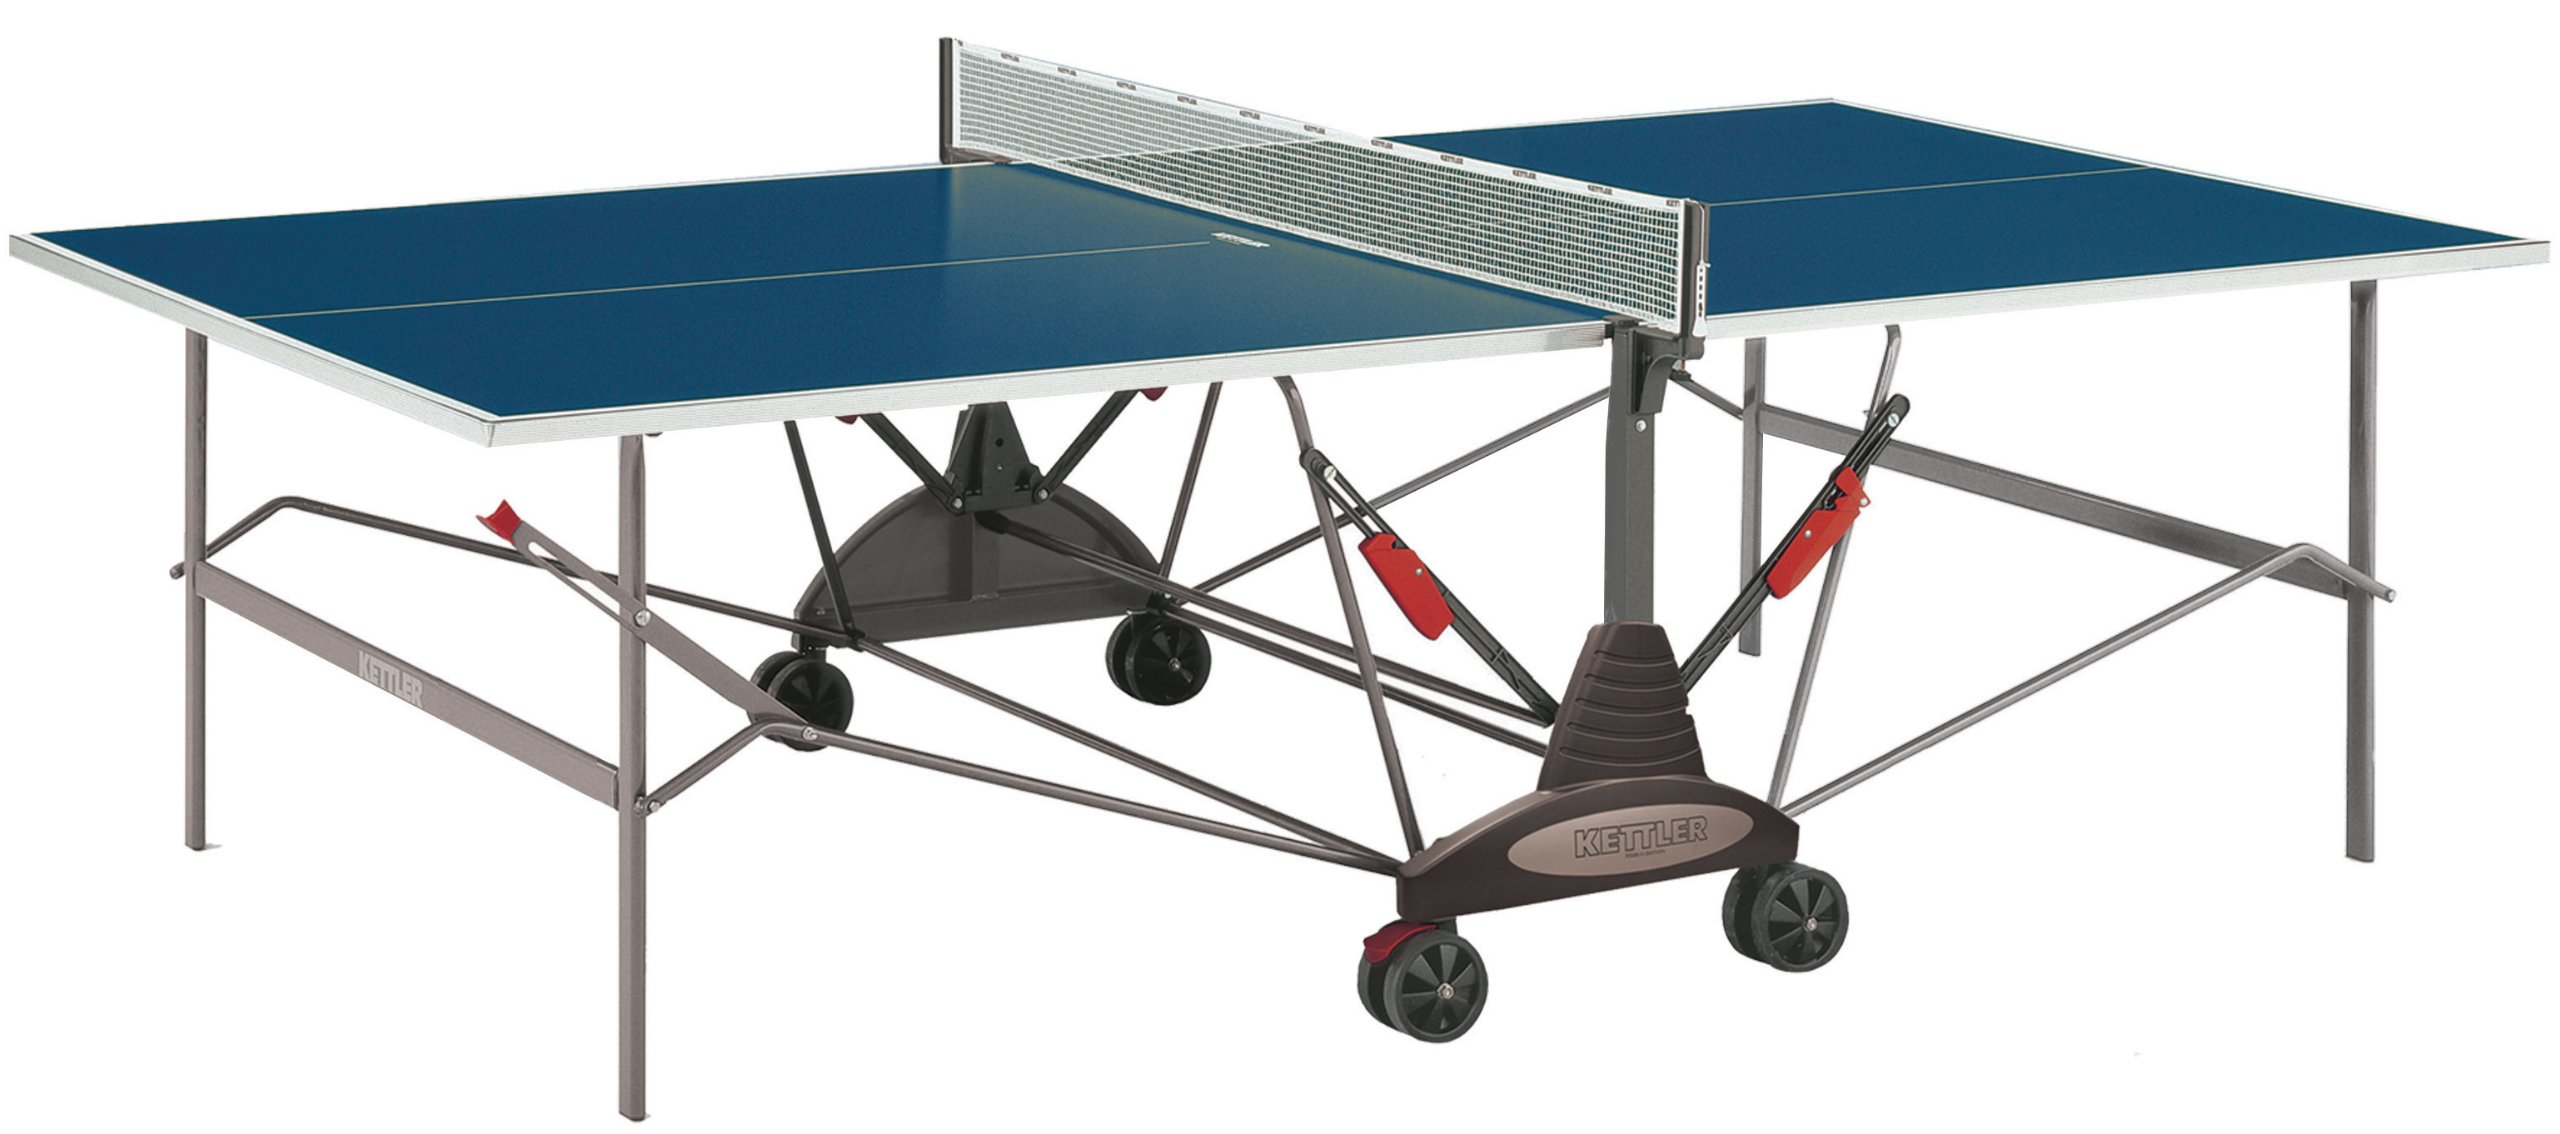 Kettler Stockholm GT Institutional/Tournament Indoor Table Tennis Table, Blue Top